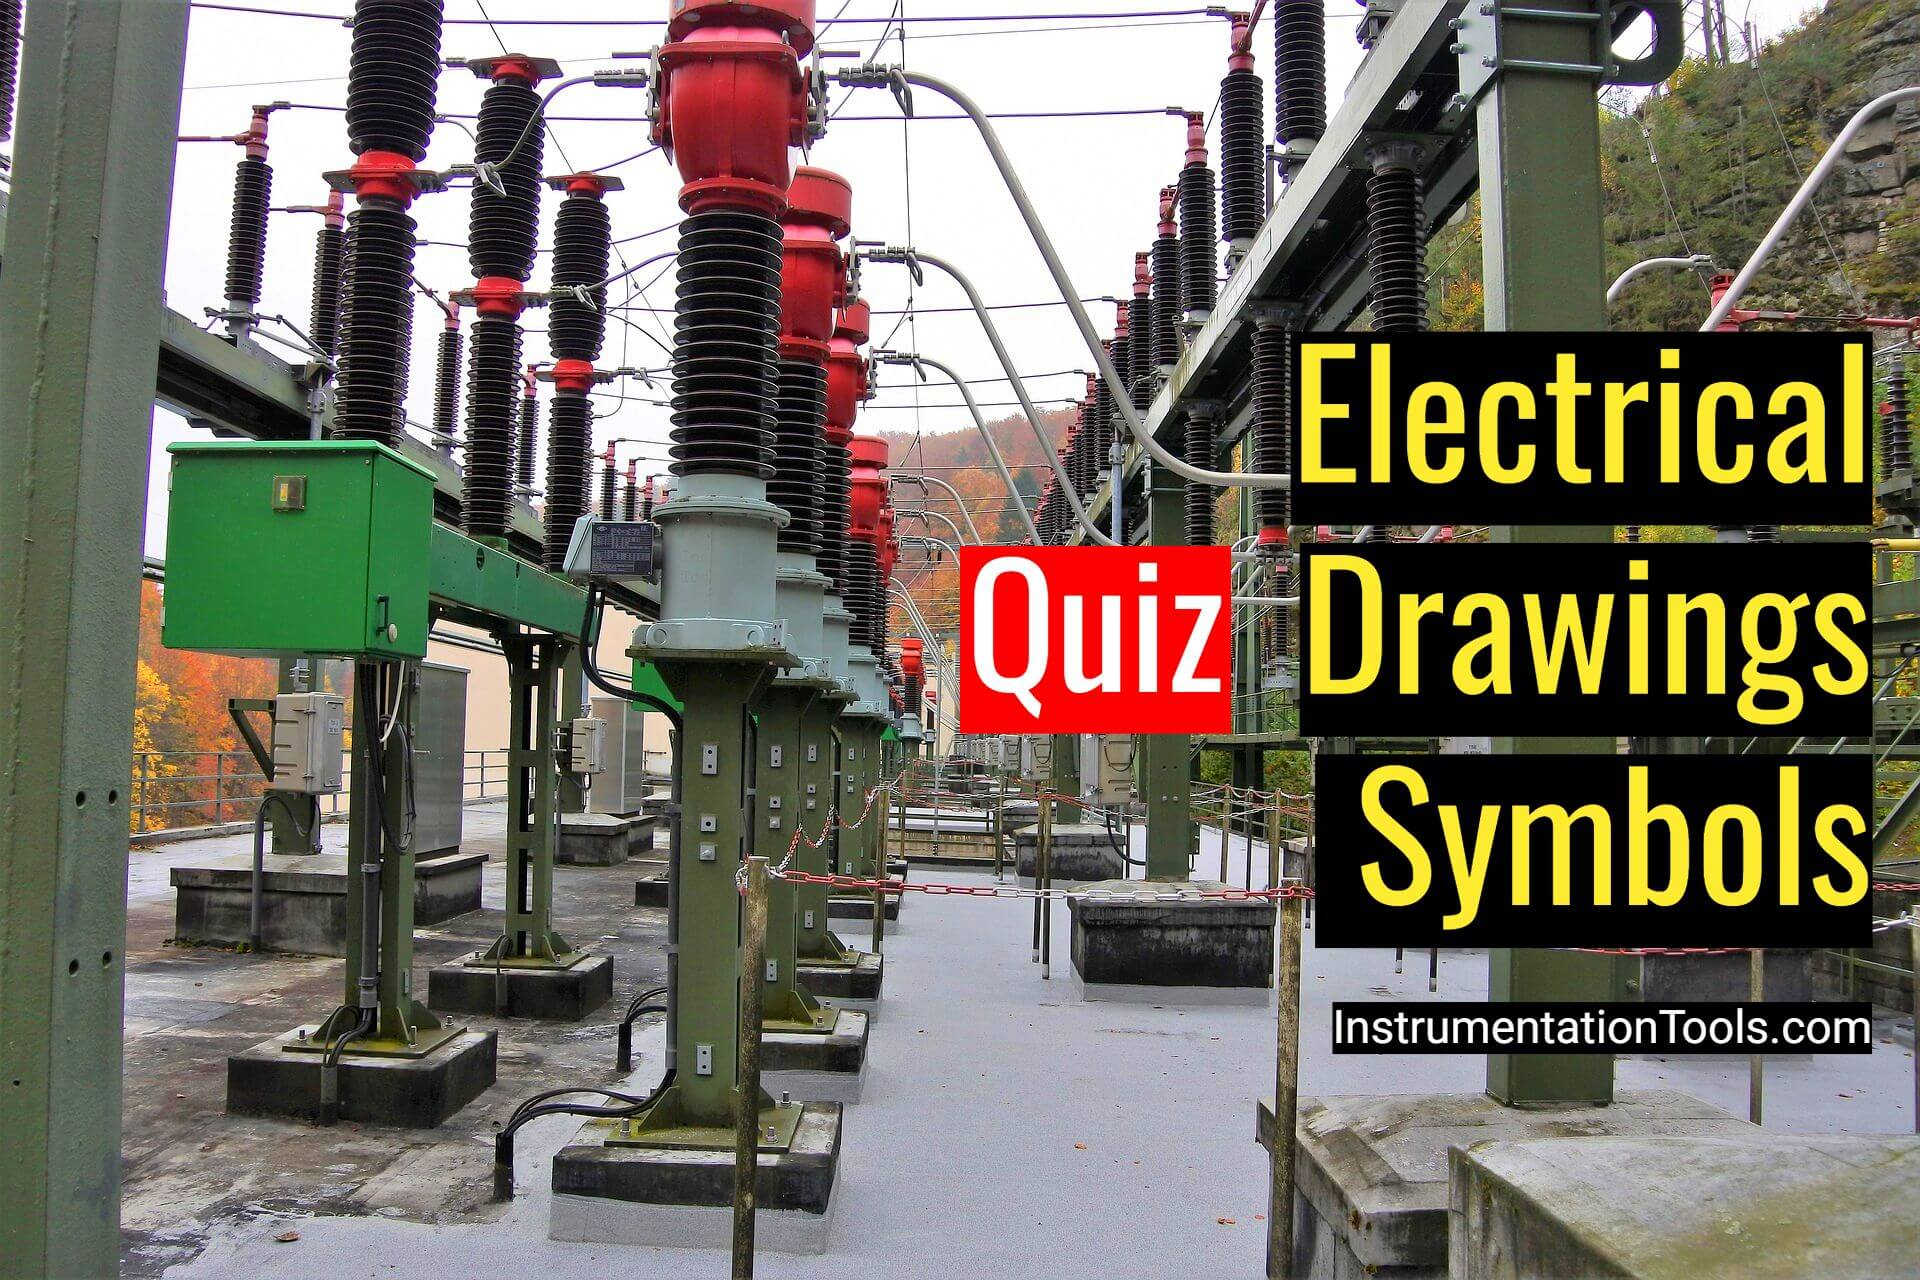 Quiz on Electrical Drawings and Symbols